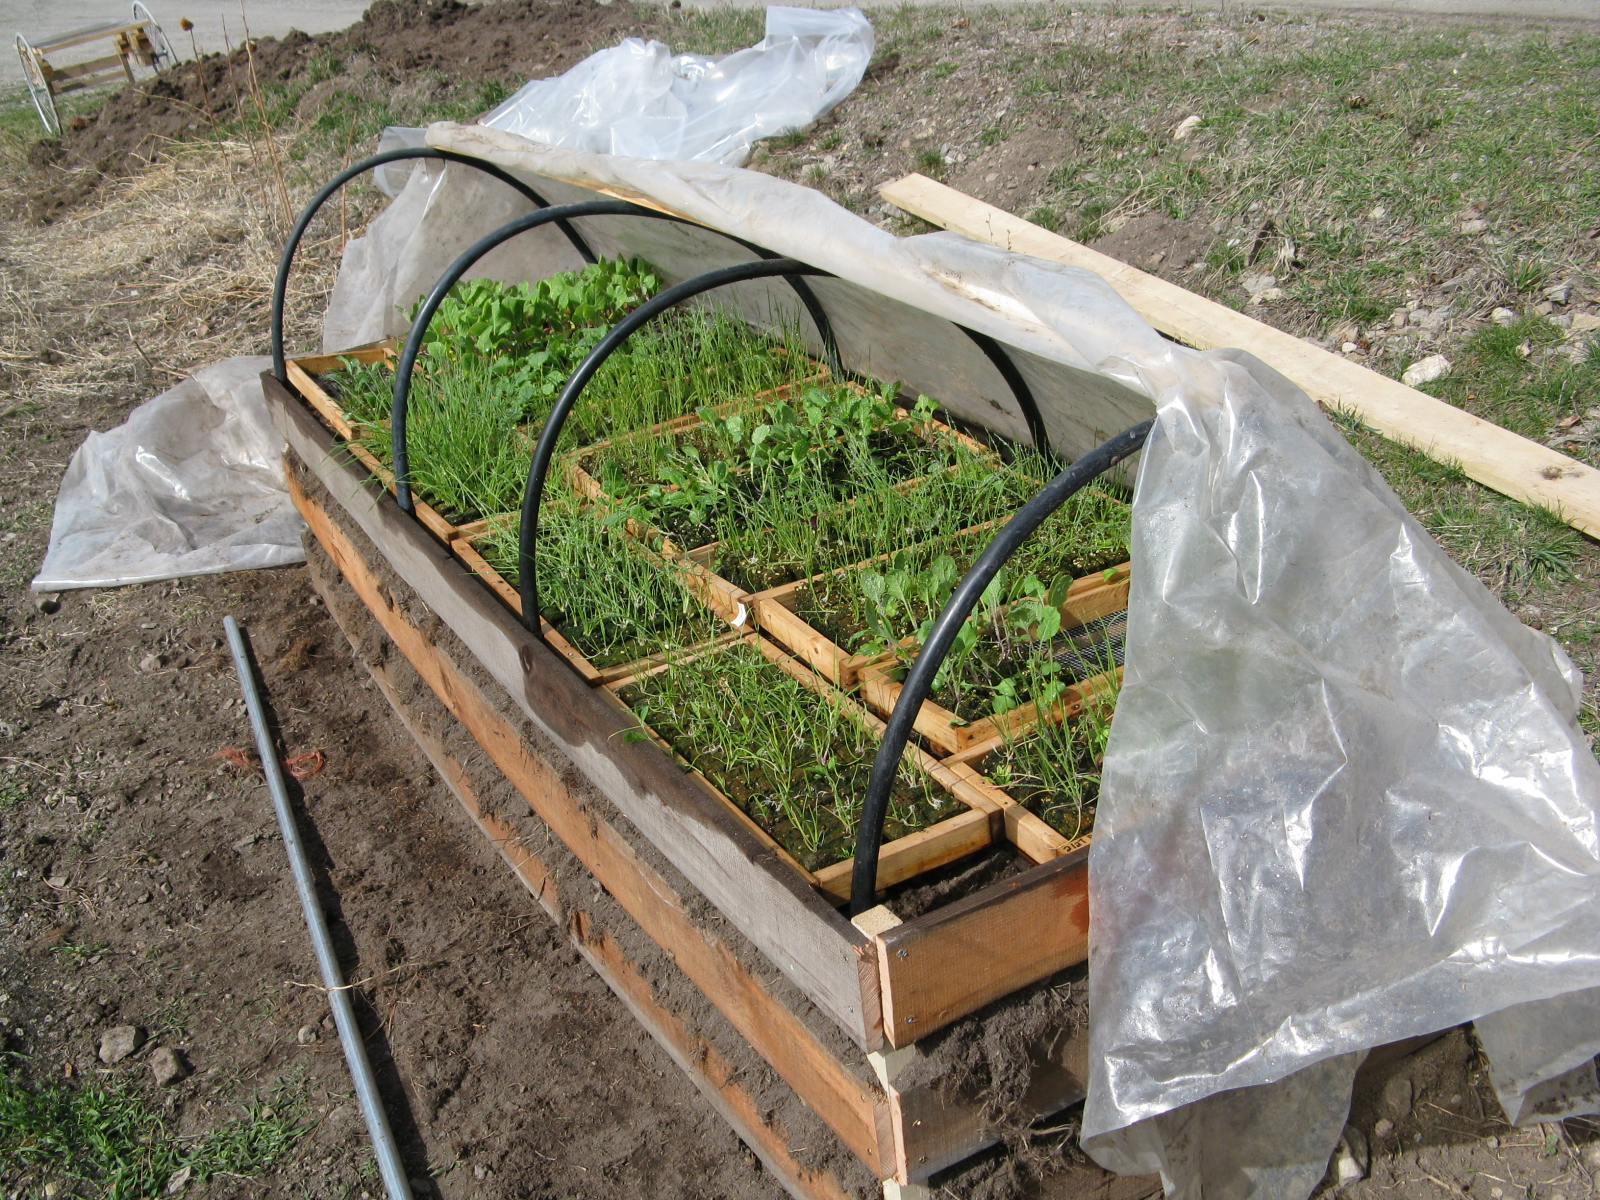 cold frame 002 - Copy.JPG